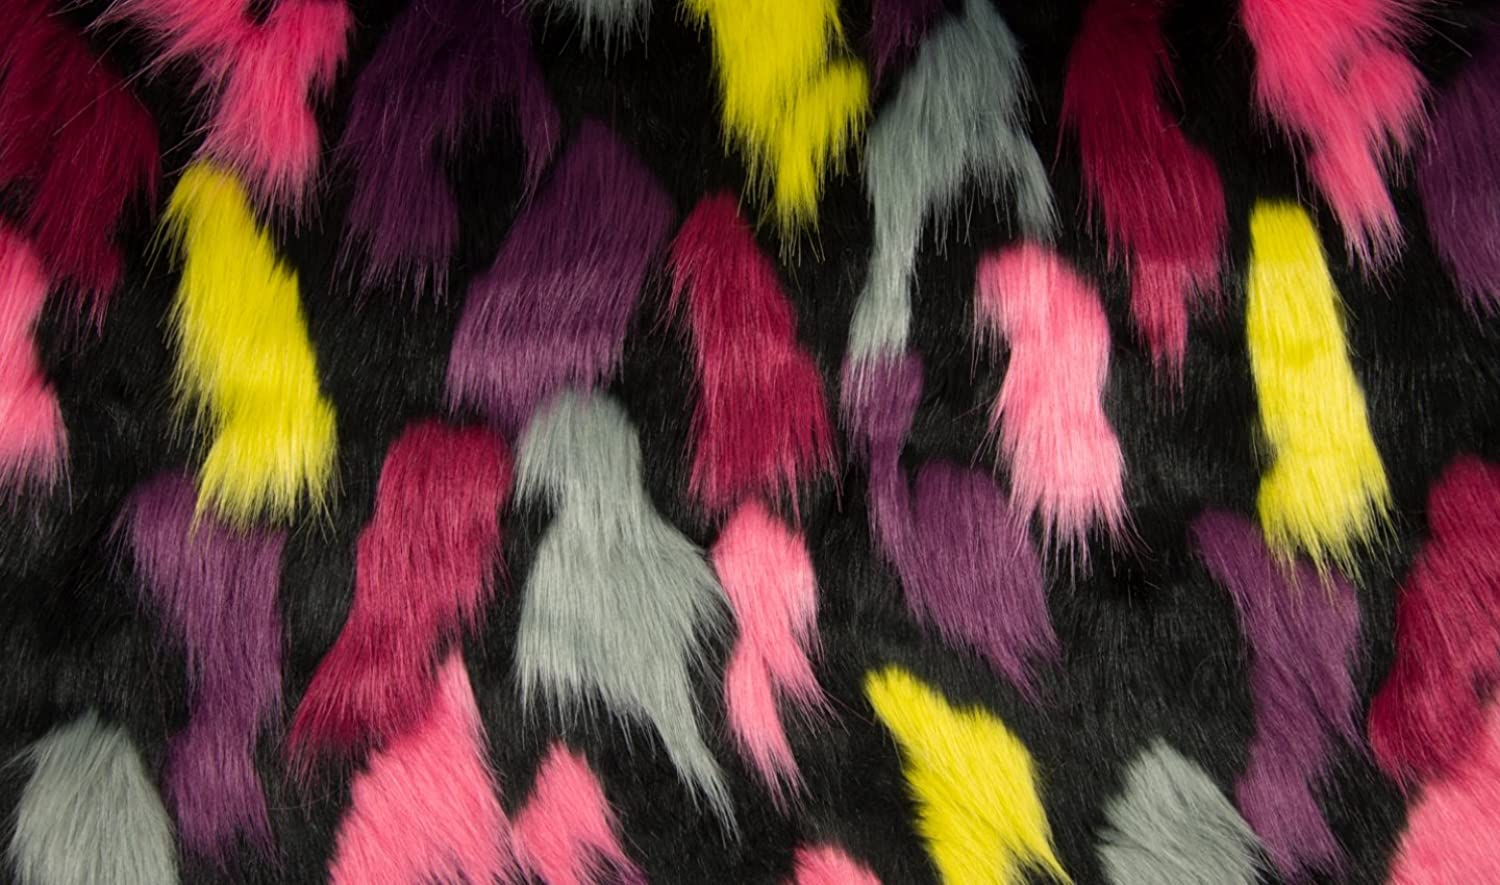 Super Luxury Faux Fur Fabric Material  HILO BLACK PINK RED YELLOW GREY